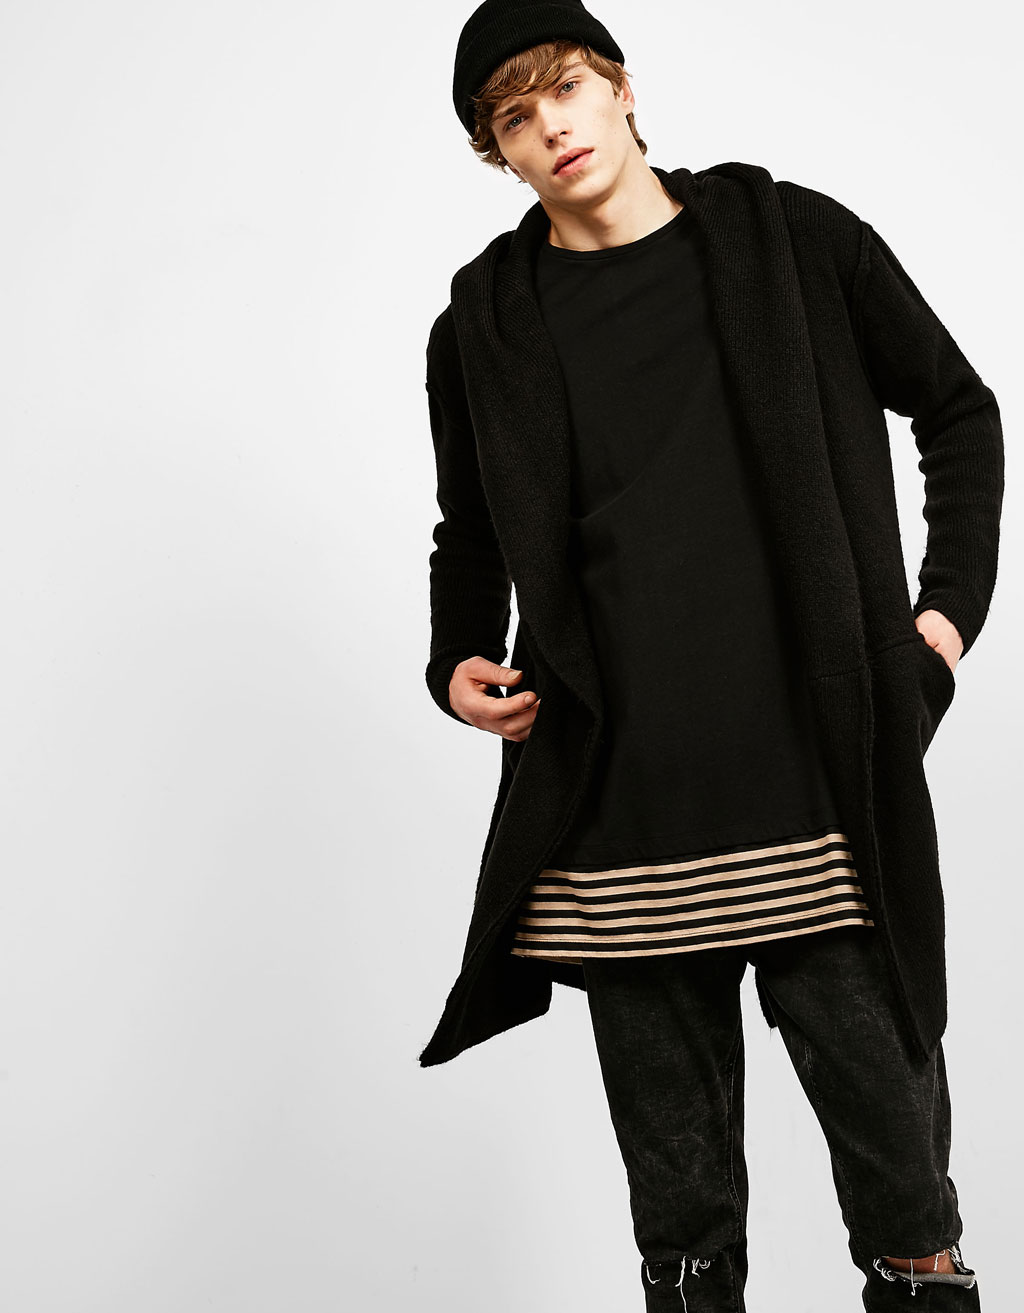 'Dark' hooded knit cardigan